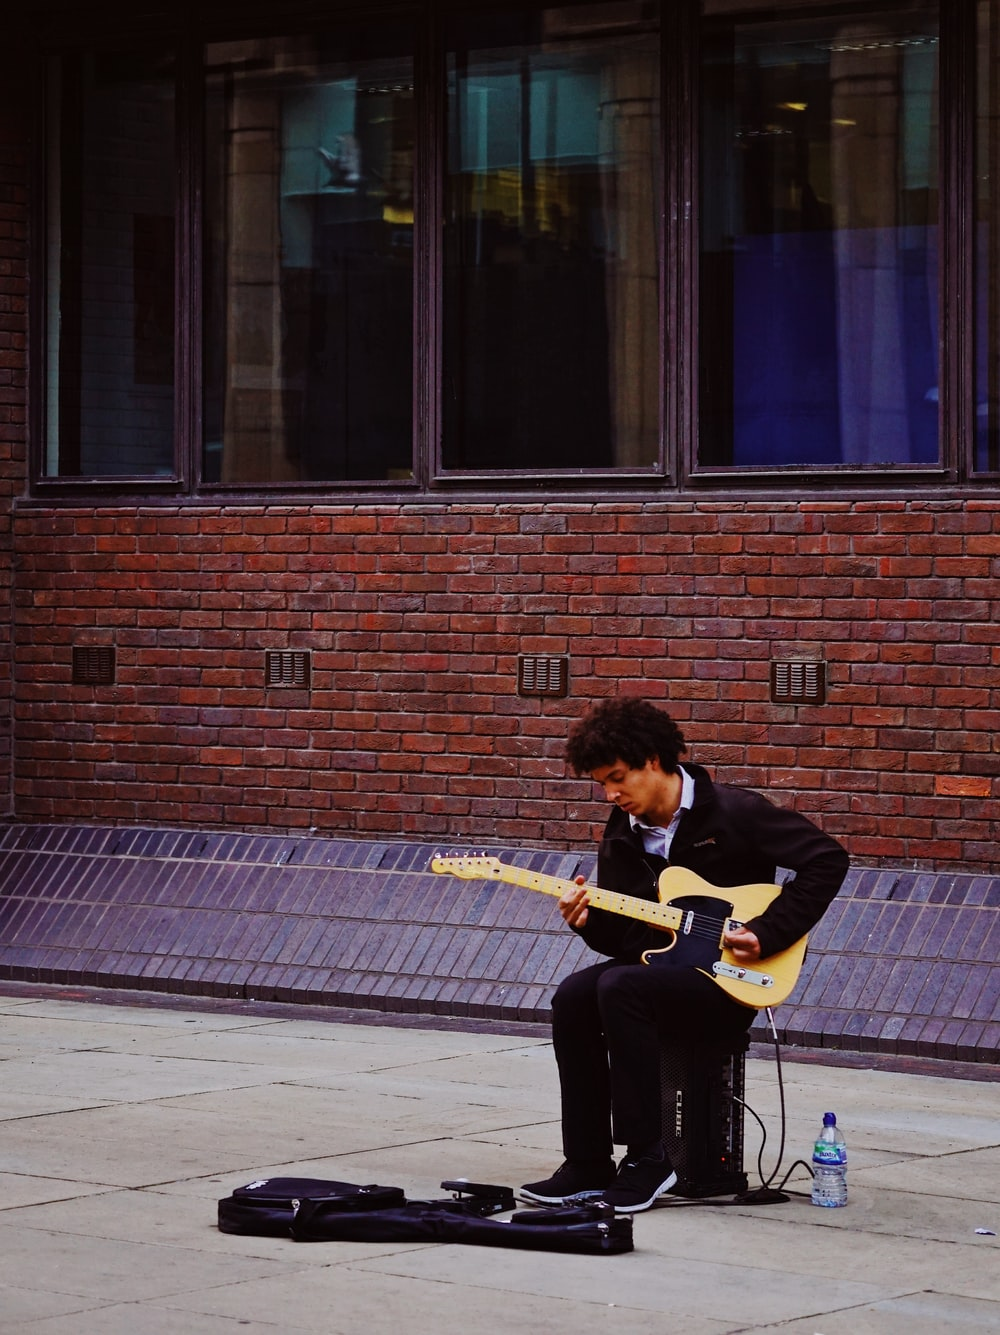 man playing with his electric guitar while sitting on guitar amlplifier